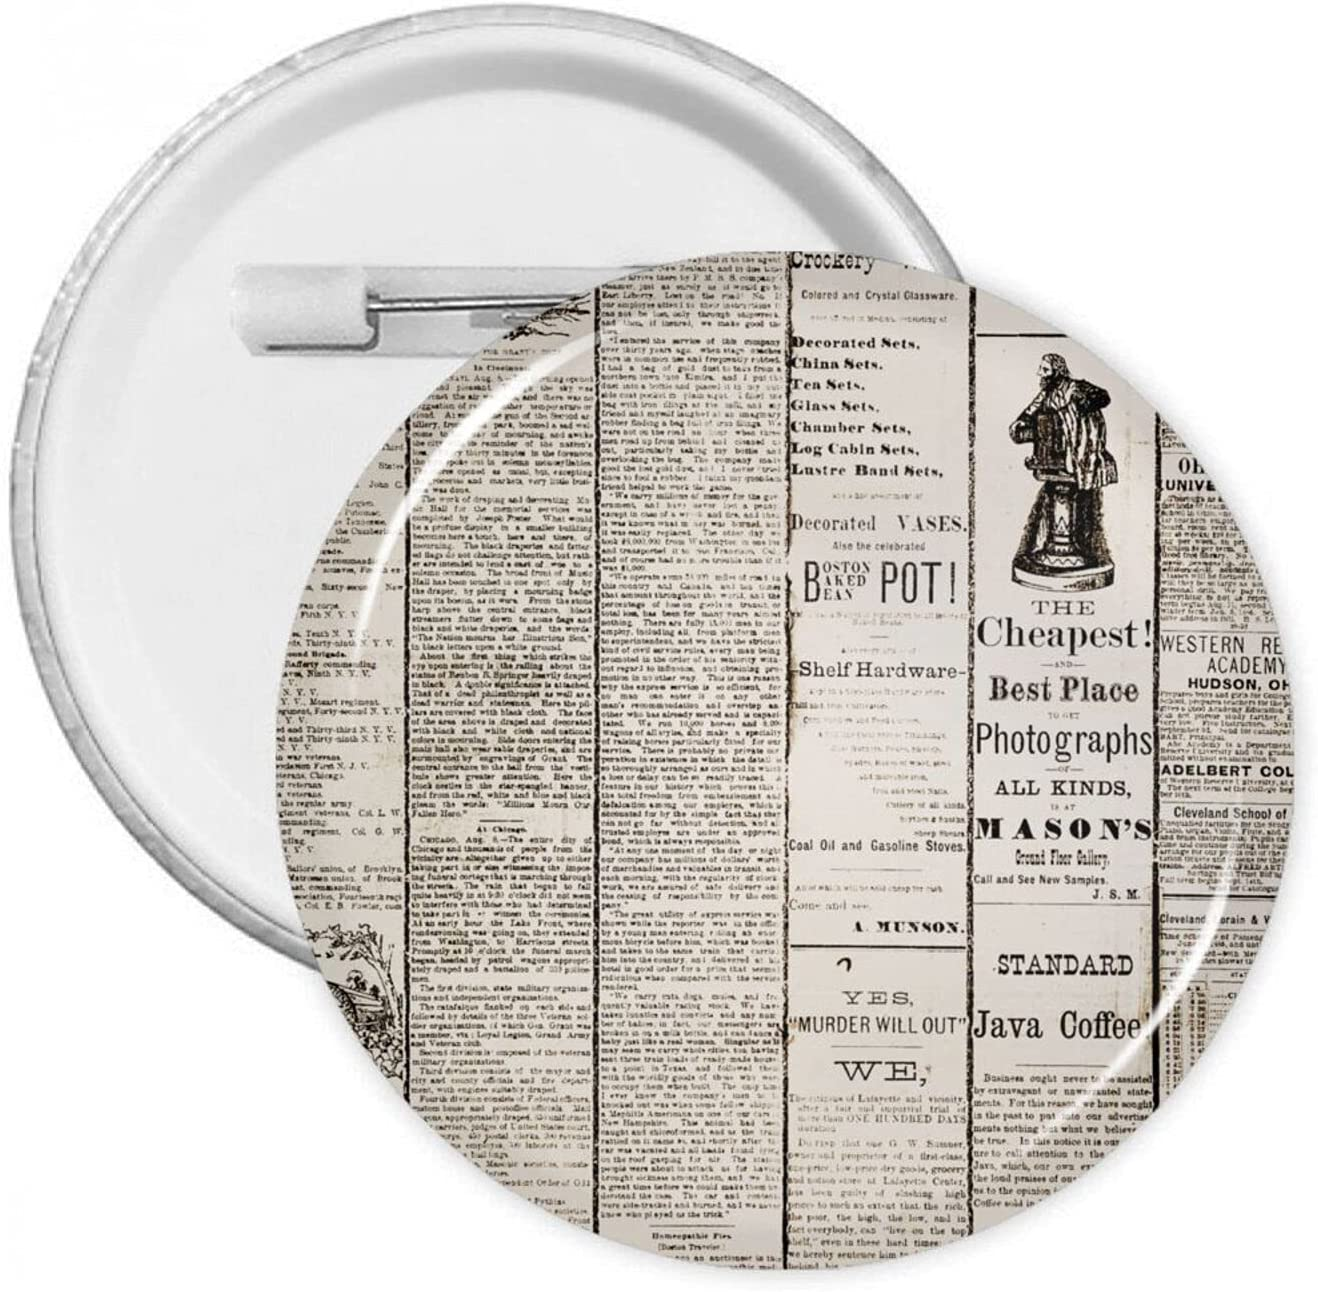 Funny Regular Wholesale store Retro Newspaper 1.2 1.8 2.3 Pins Inch Round Butto Brooches